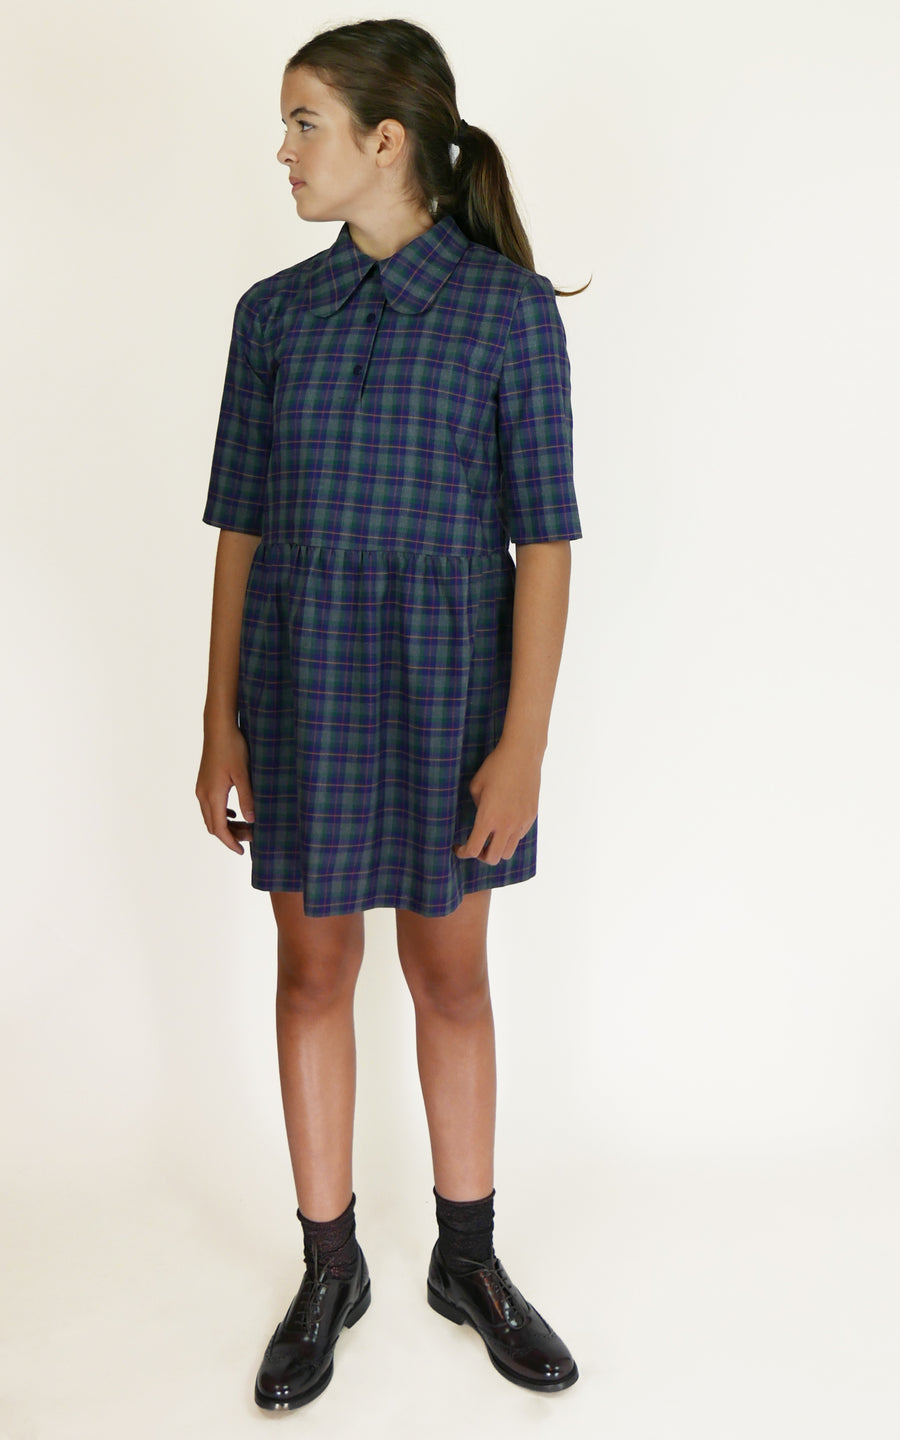 miss L. Ray Ondine dress highland blue/green children and teen fashion